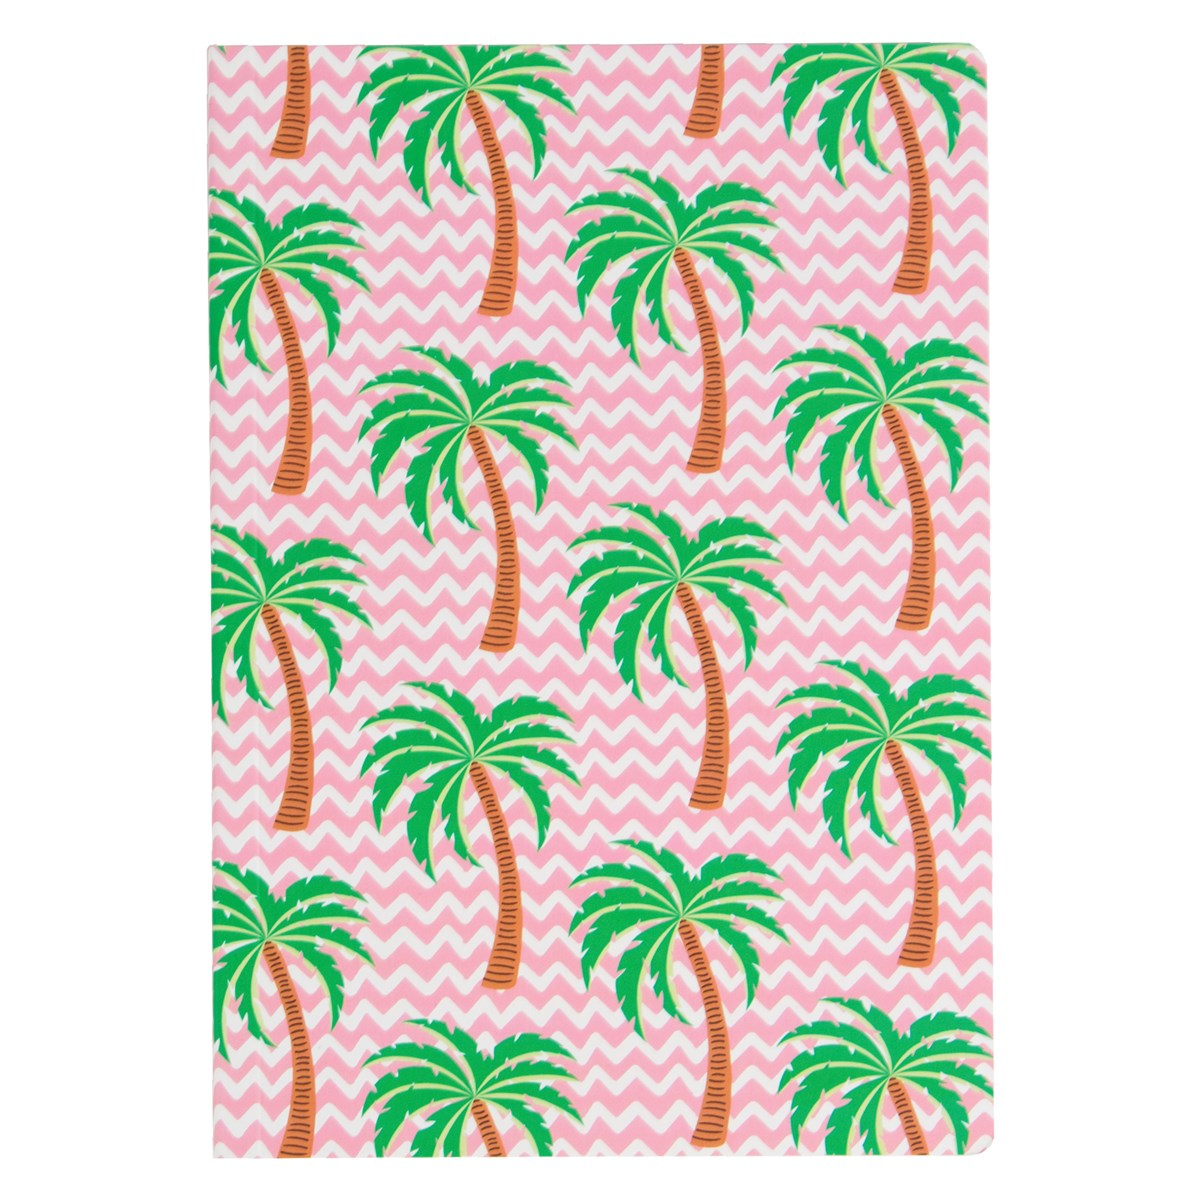 tropical notebooks and stationery online, palm trees notebook online, the costume rooms bude, colourful gifts online or uk based